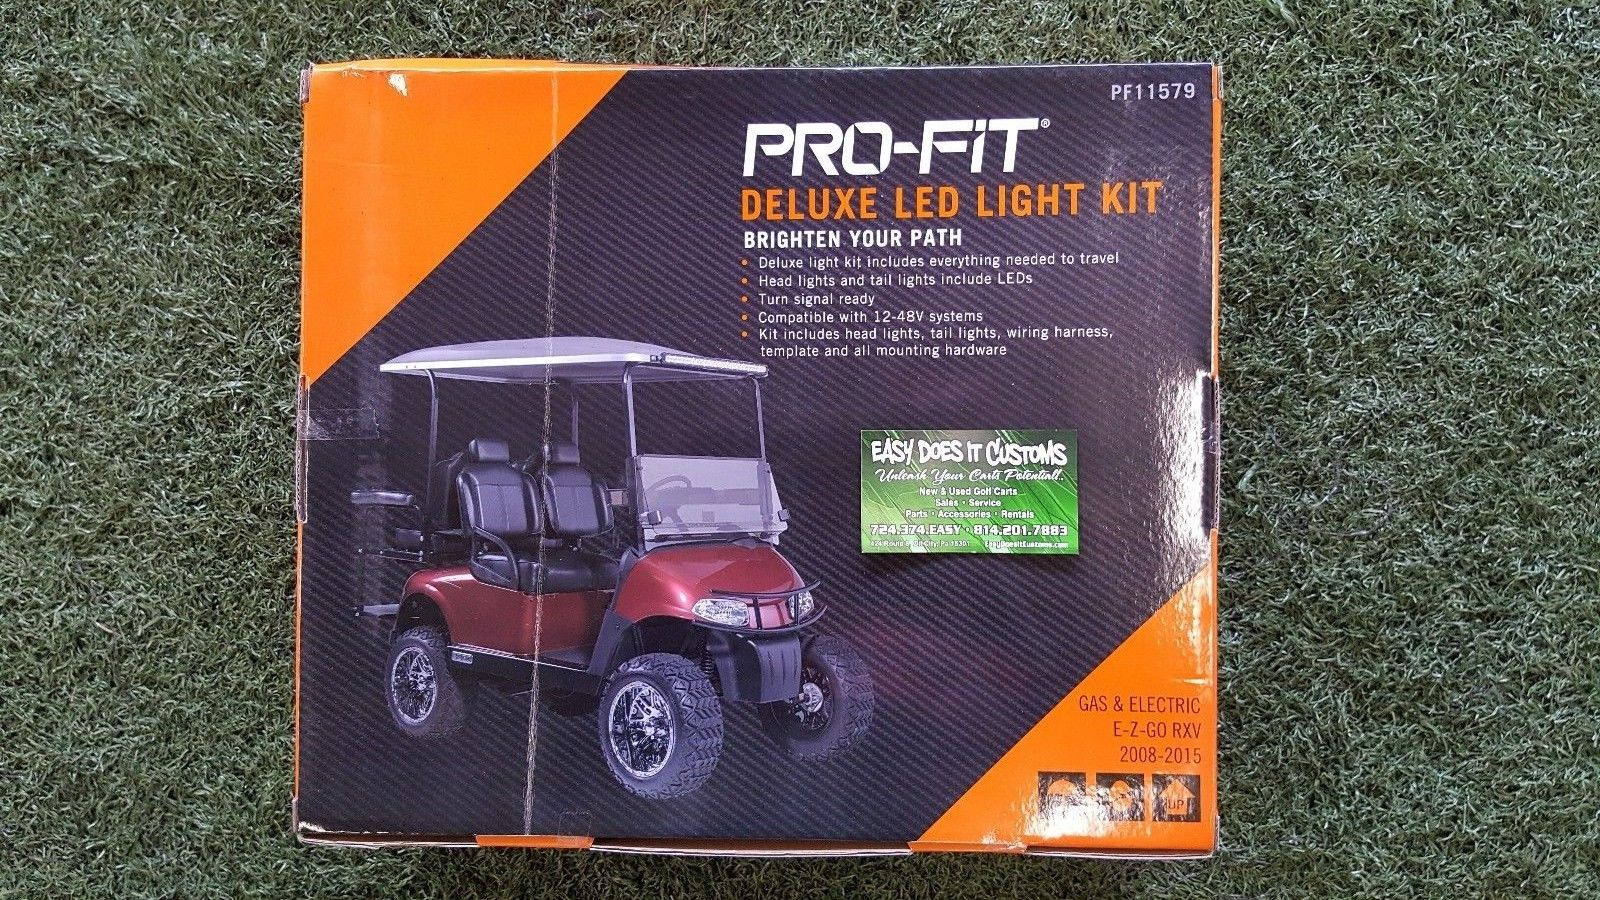 Deluxe Led Light Kit For Ezgo Rxv Golf Cart 2008 2015 Easy Does It Wiring Harness